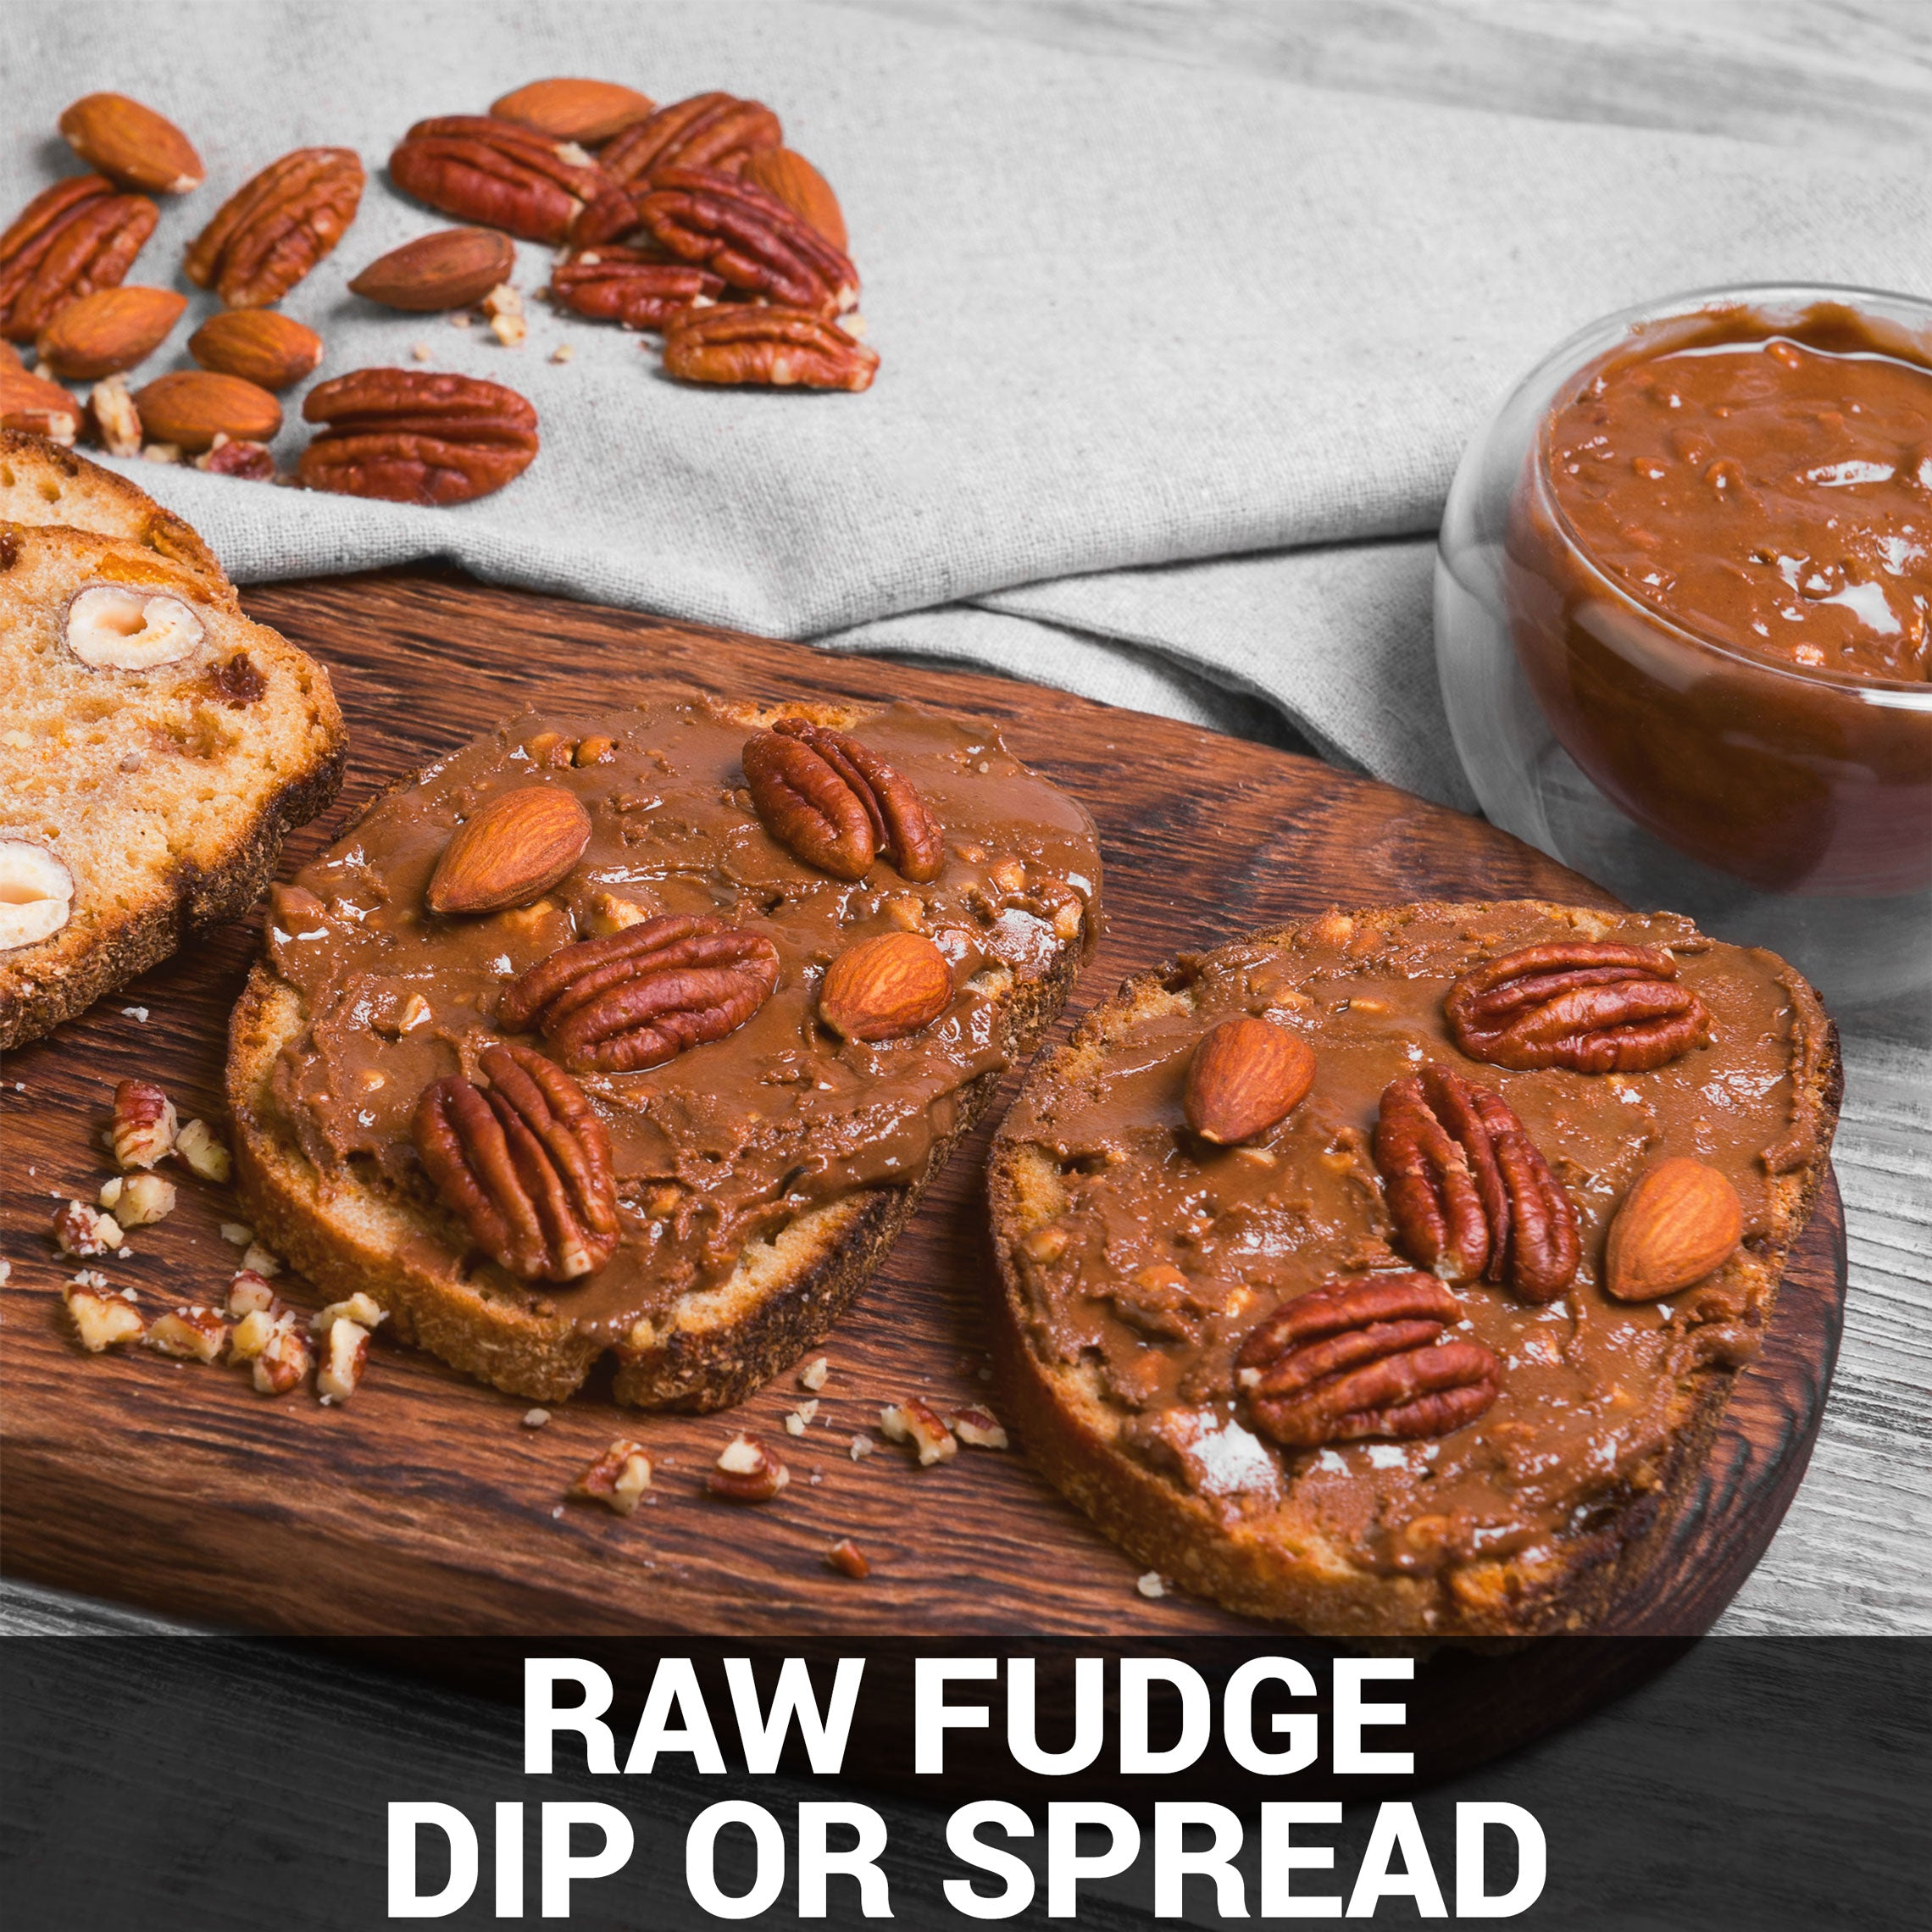 Raw Fudge (Dip or Spread) Recipe - Foods Alive